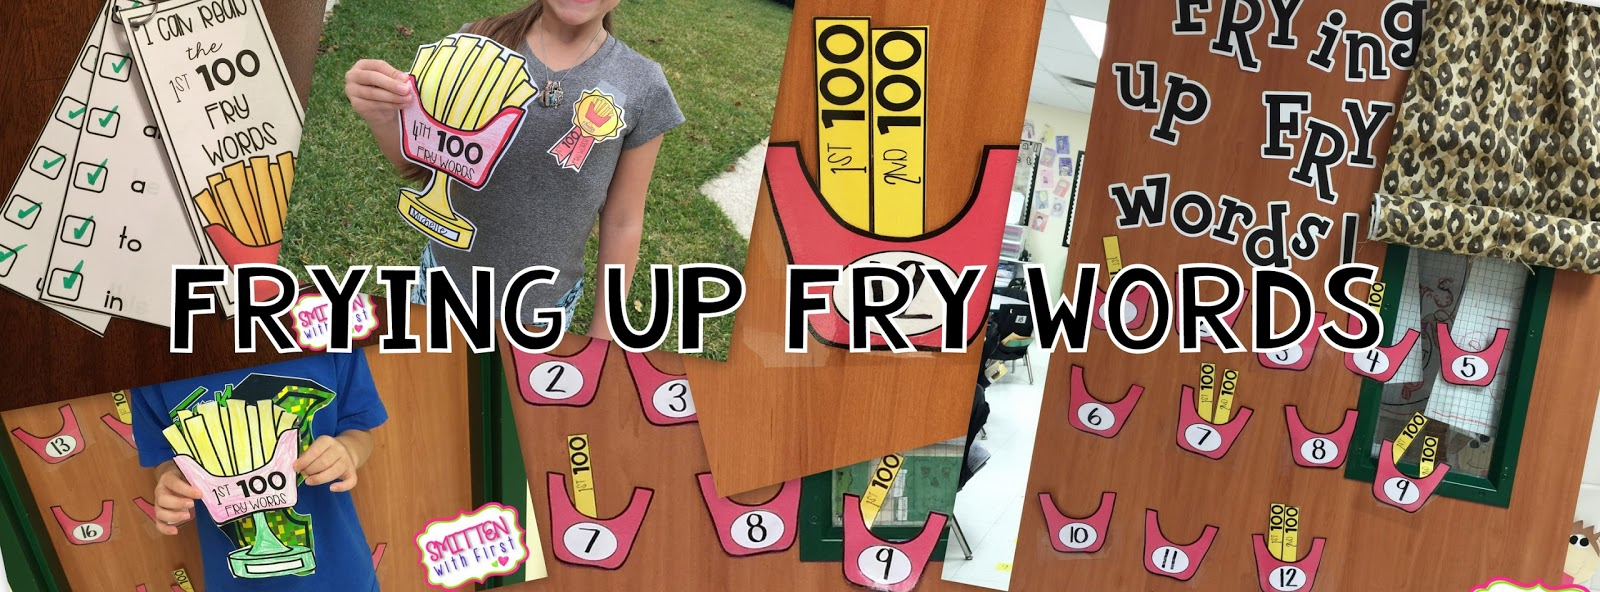 Smitten with First: Frying up FRY words!